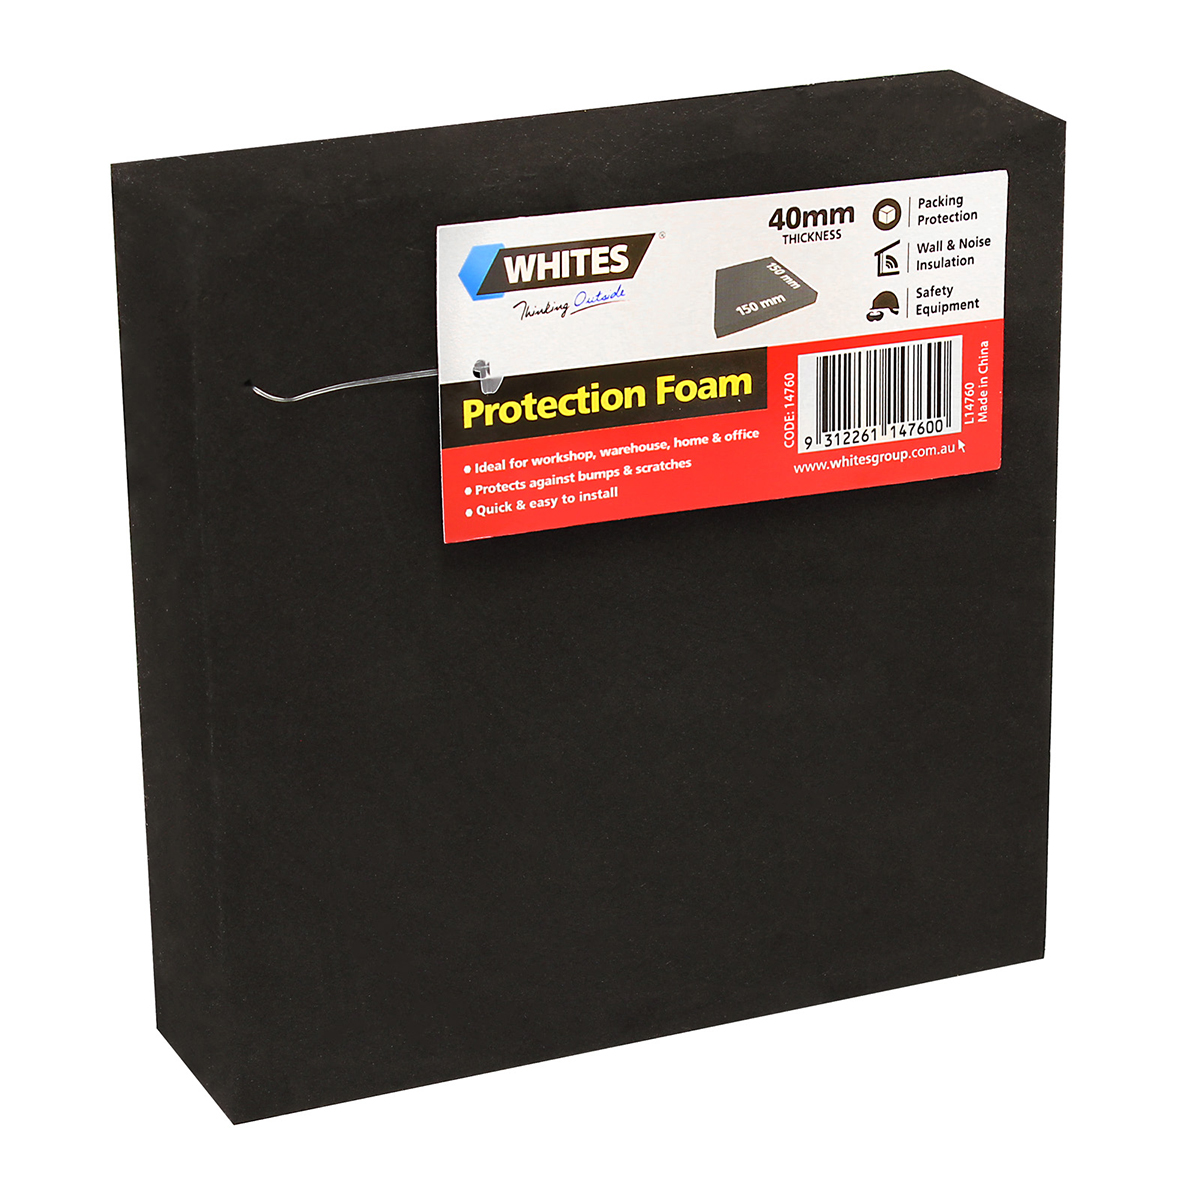 14760 Protection Foam